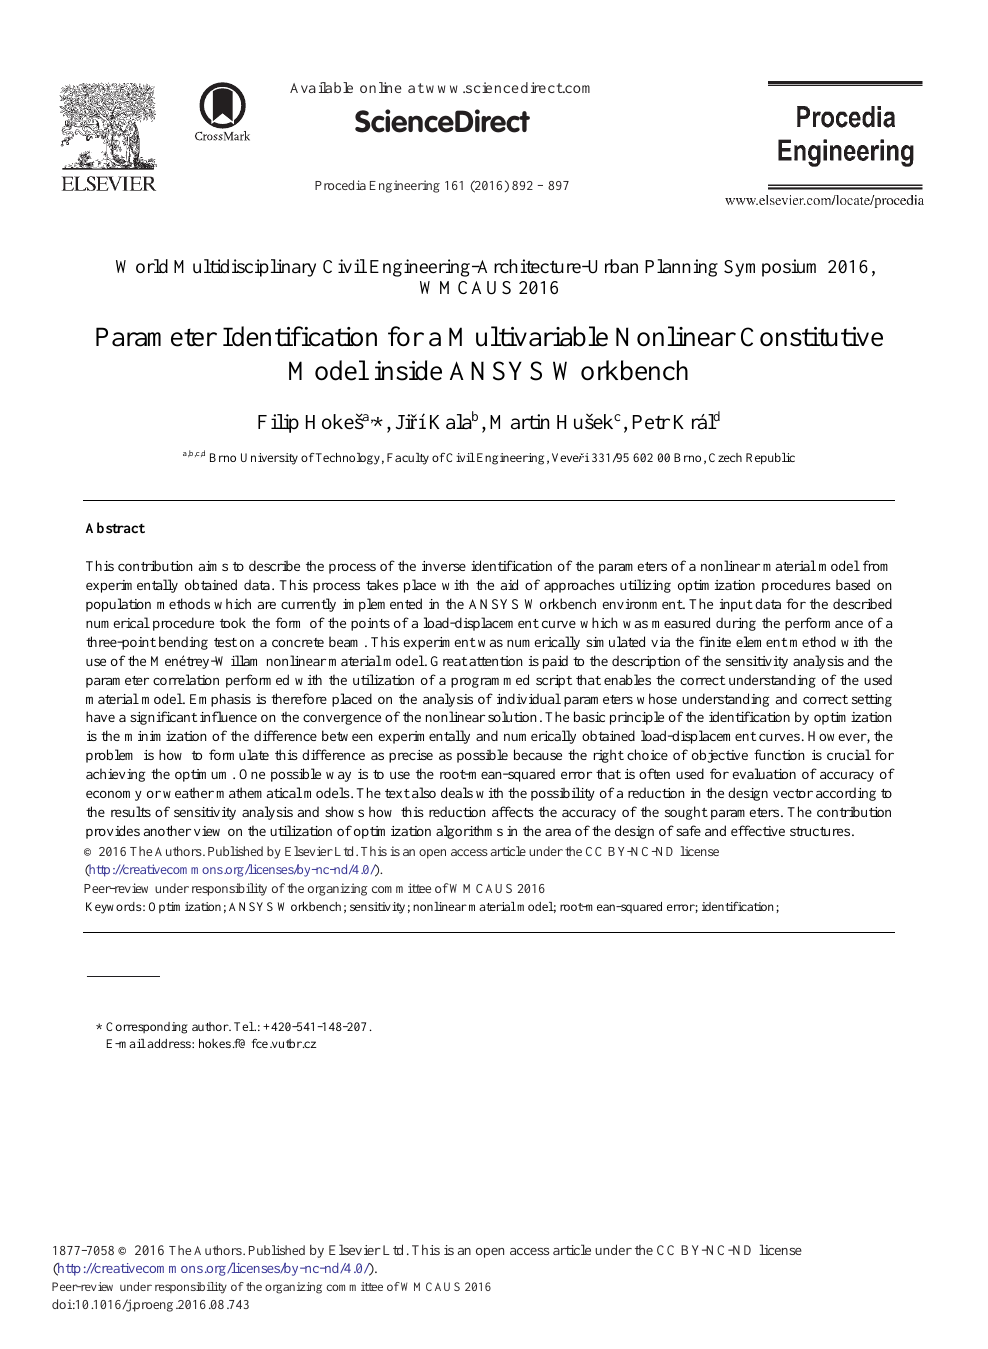 Parameter Identification for a Multivariable Nonlinear